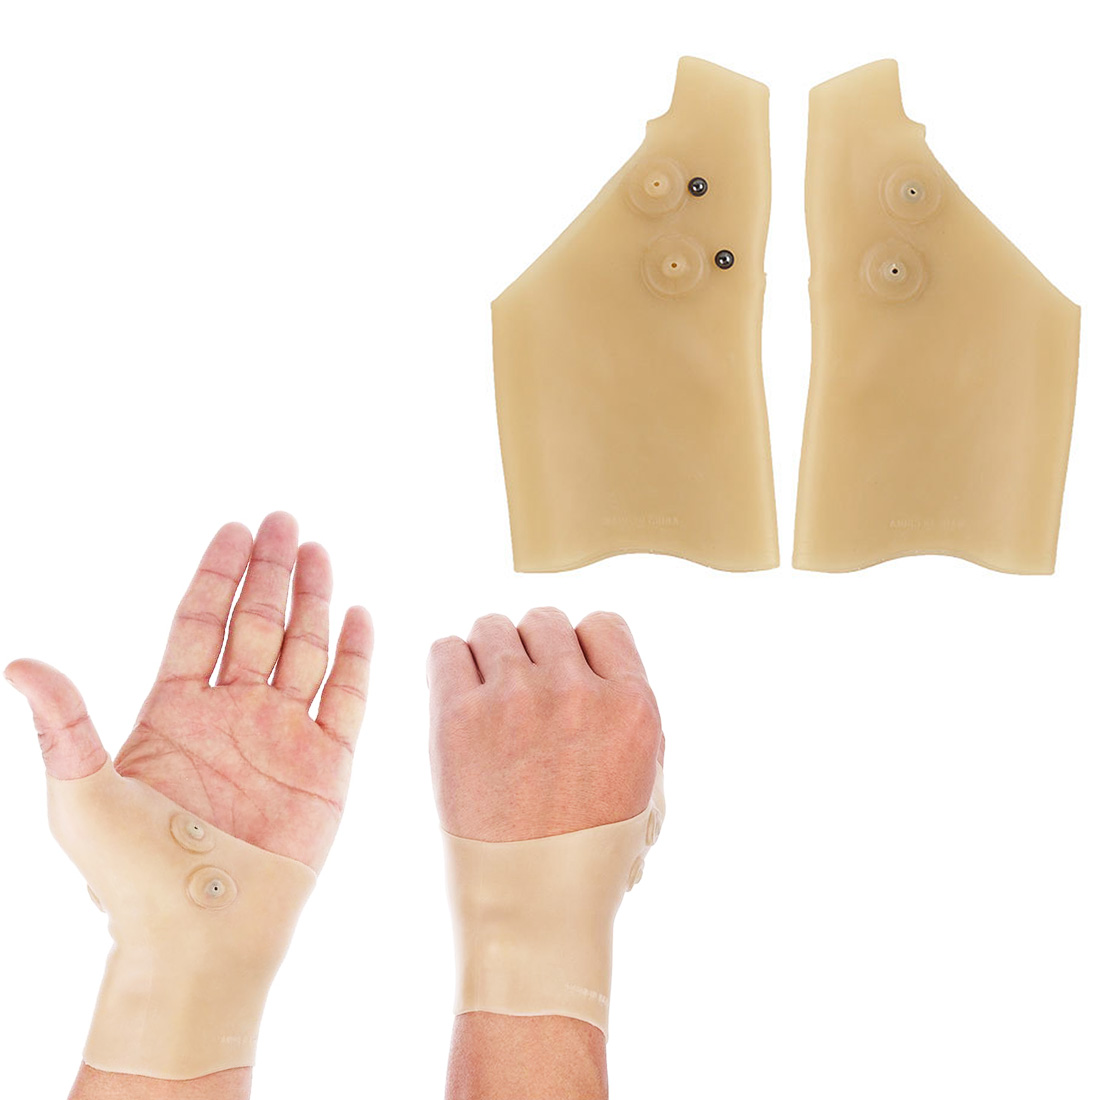 1pcs Magnetic Therapy Hand Thumb Wrist Brace Pain Relief Arthritis Carpal Tunnel Syndrome Relief Pressure Corrector Glove